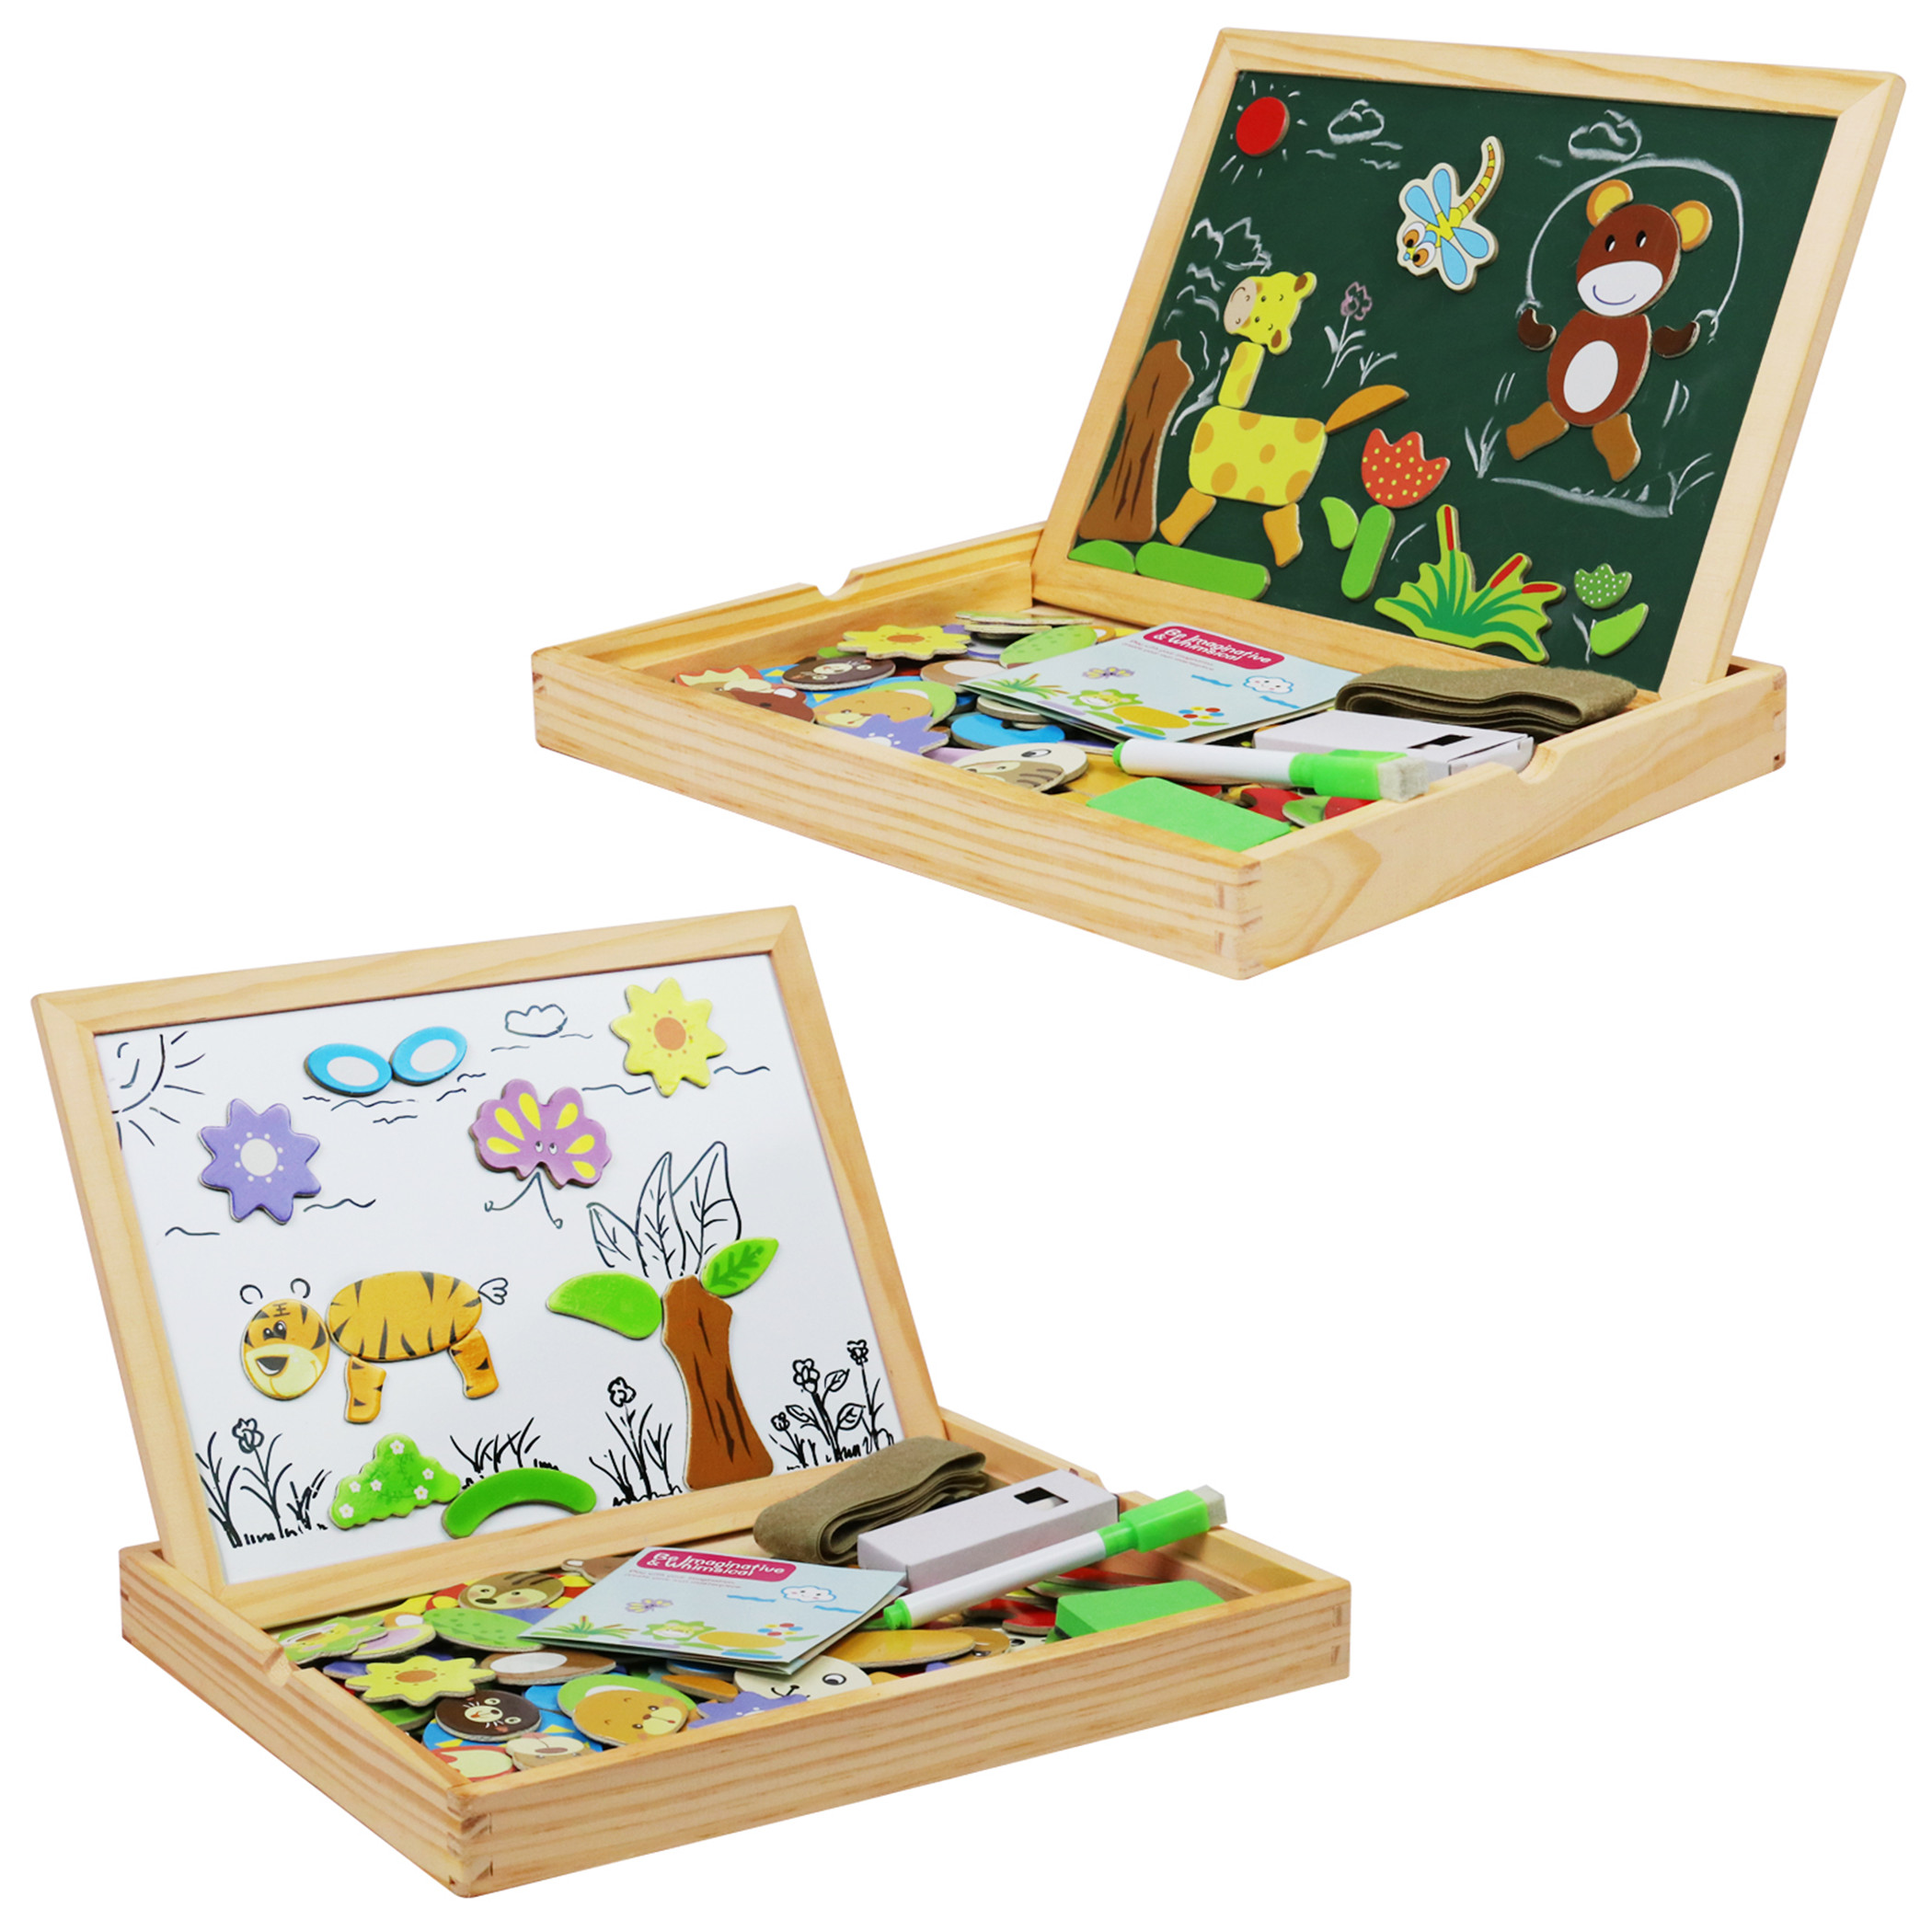 becko toddler magnetic jigsaw puzzle board wooden educational toys